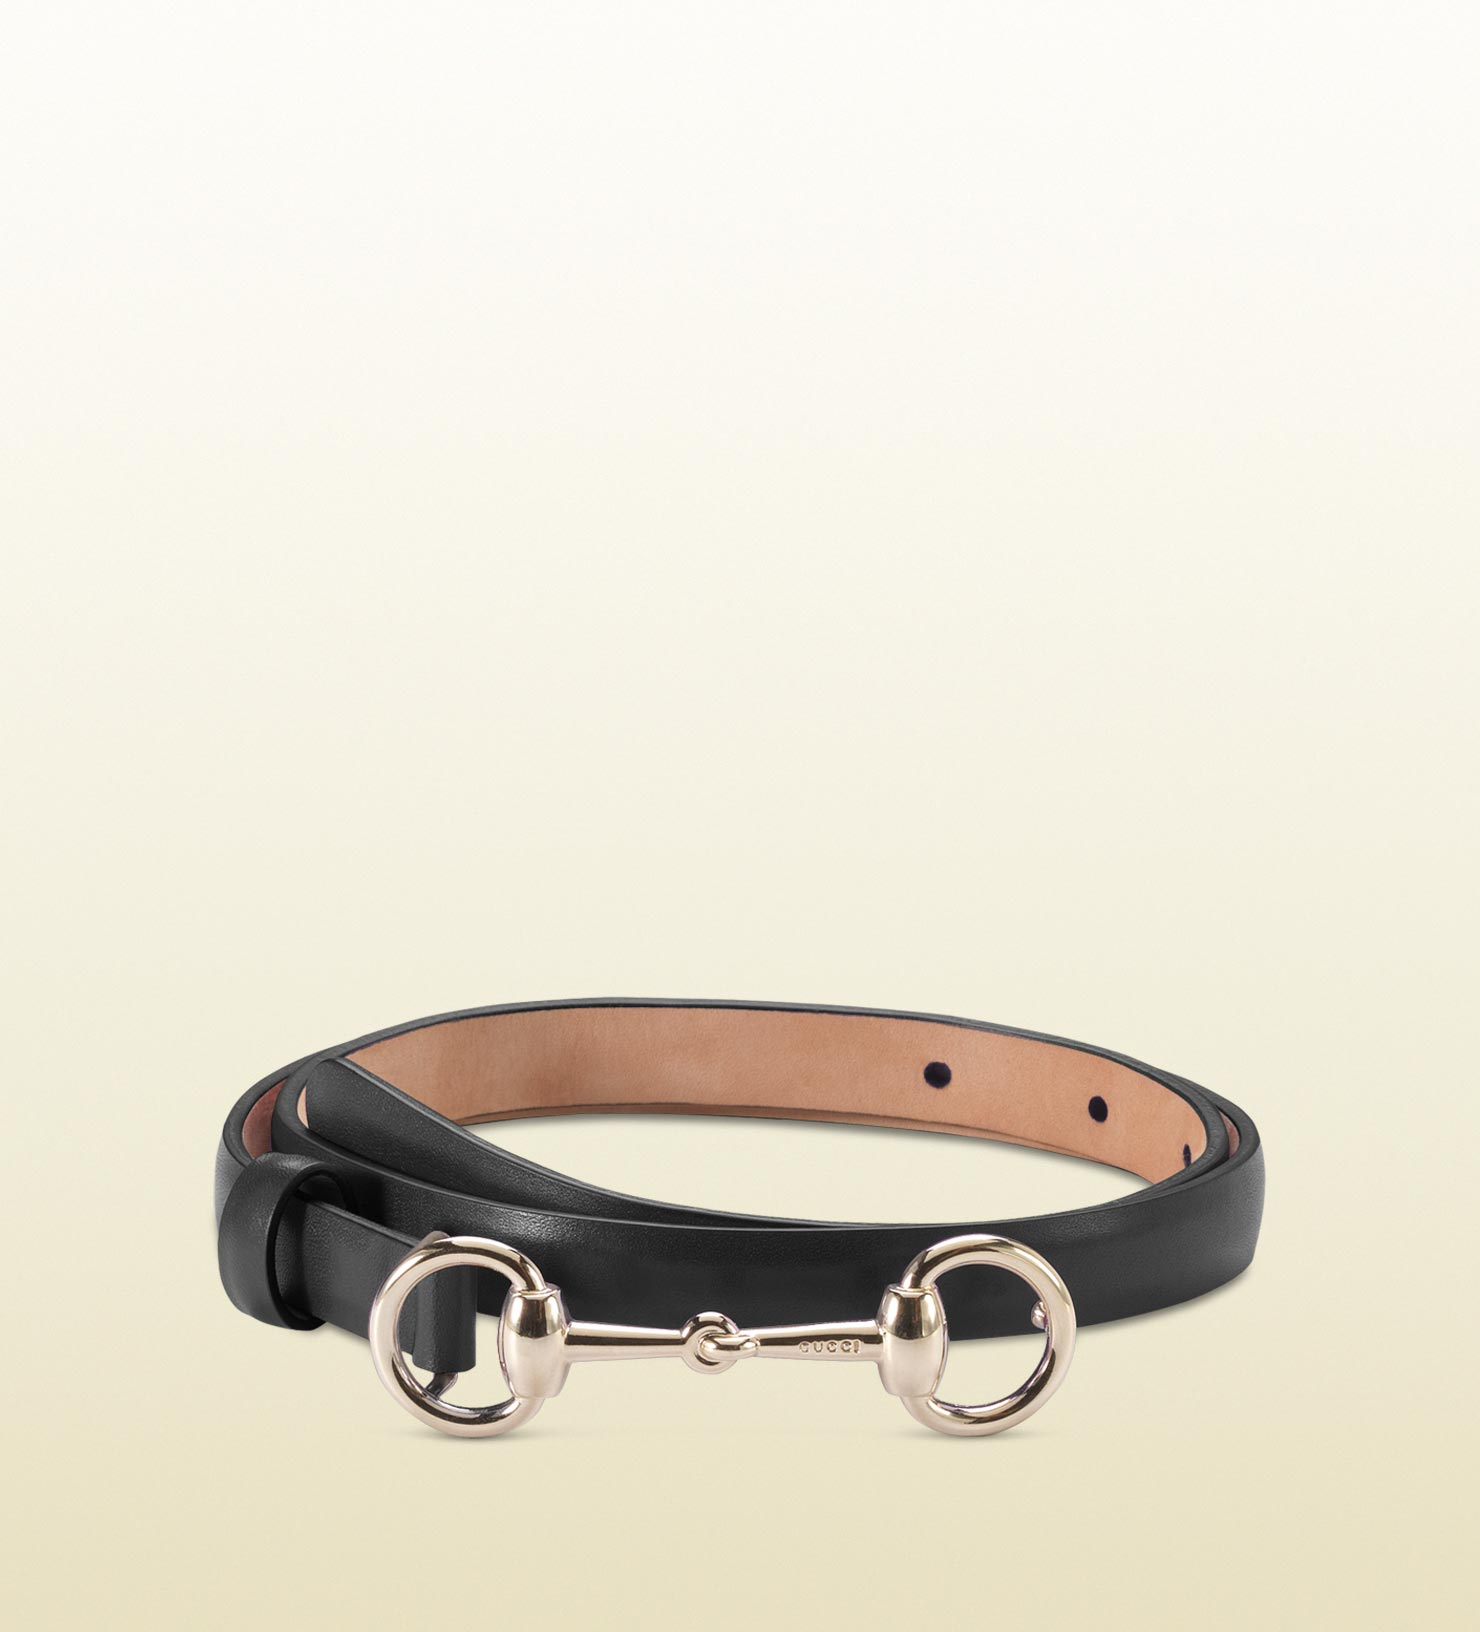 46711bbb5e0 Gucci Leather Skinny Belt With Horsebit Buckle in Black - Lyst